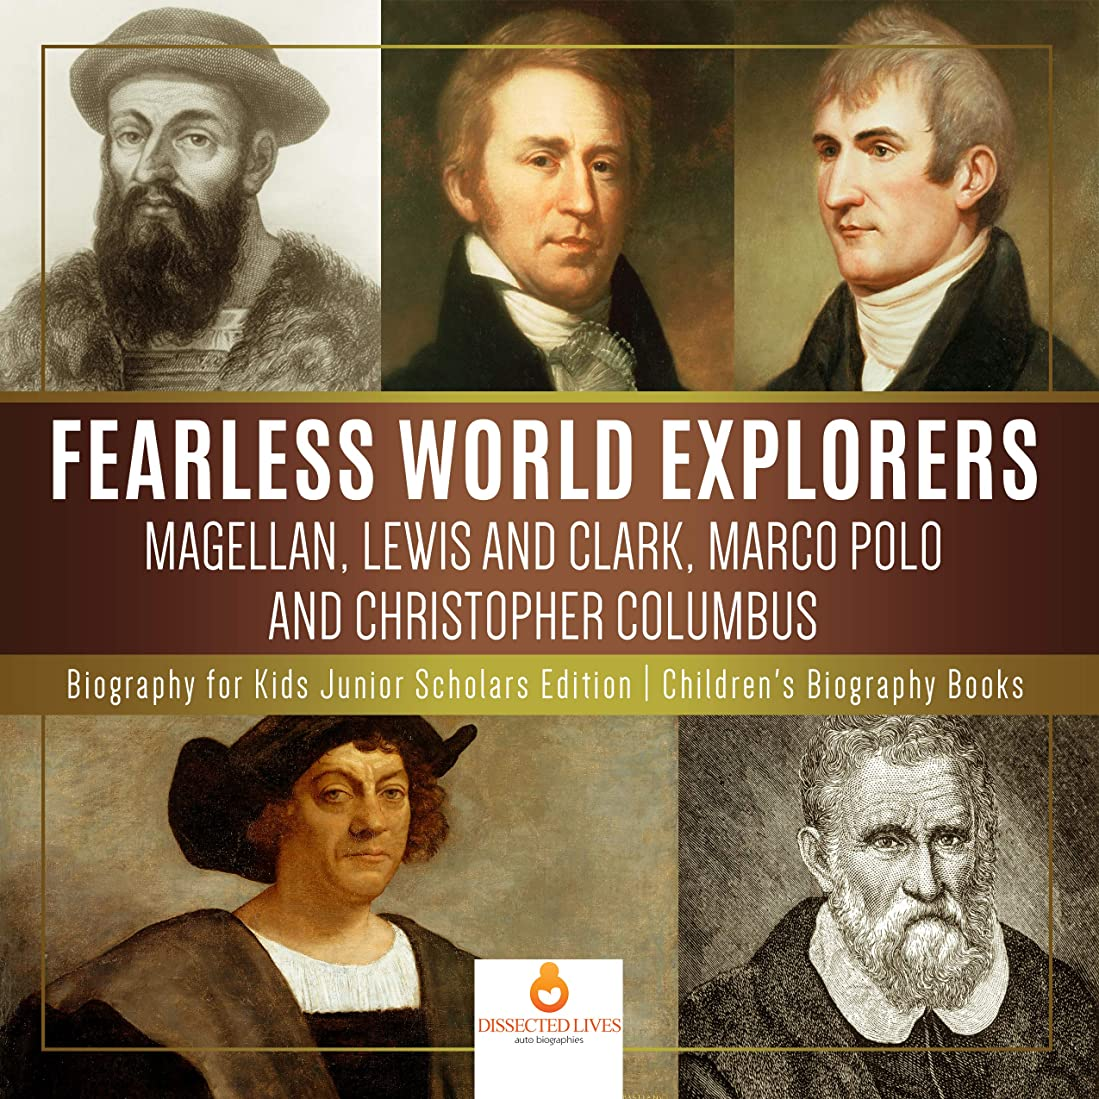 素晴らしい良い多くのゲート発掘するFearless World Explorers : Magellan, Lewis and Clark, Marco Polo and Christopher Columbus | Biography for Kids Junior Scholars Edition | Children's Biography Books (English Edition)